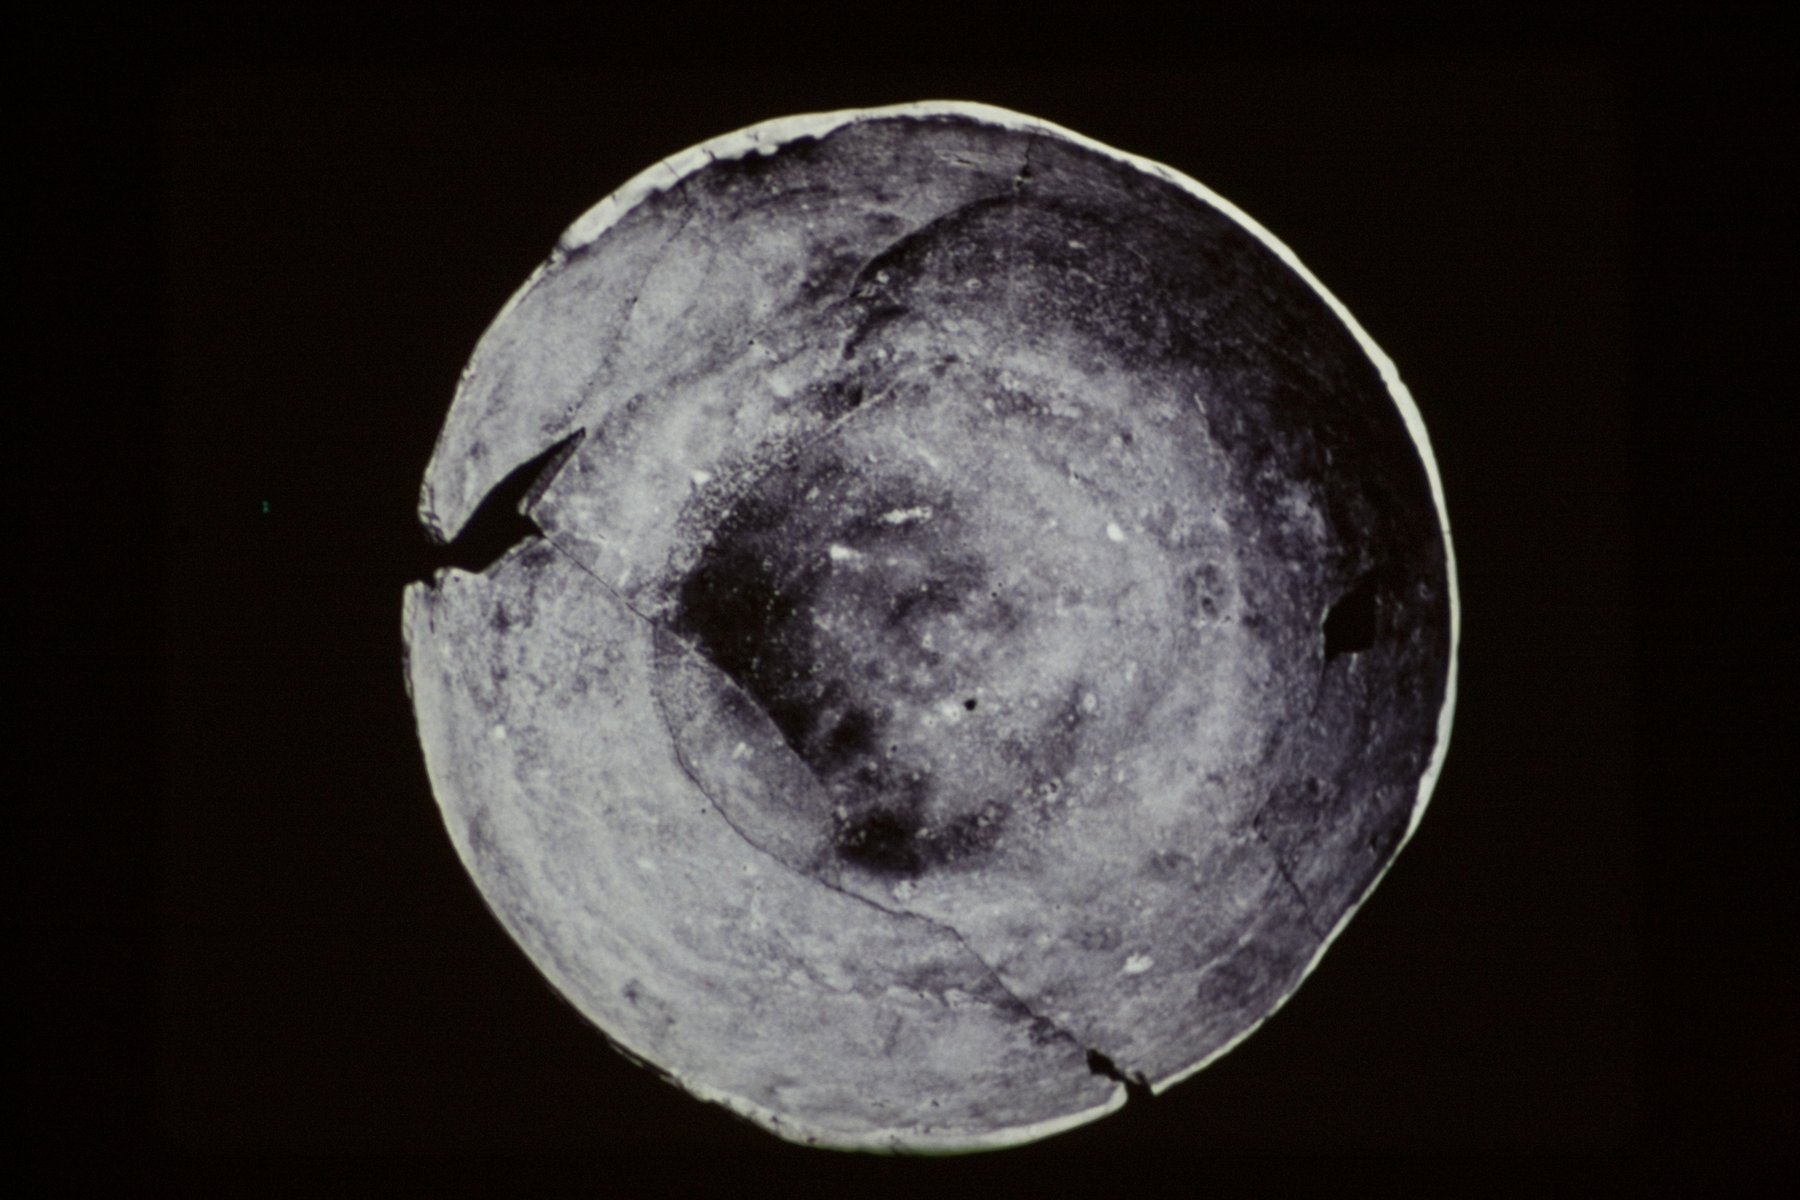 A grey circle resembling a broken plate on a black background